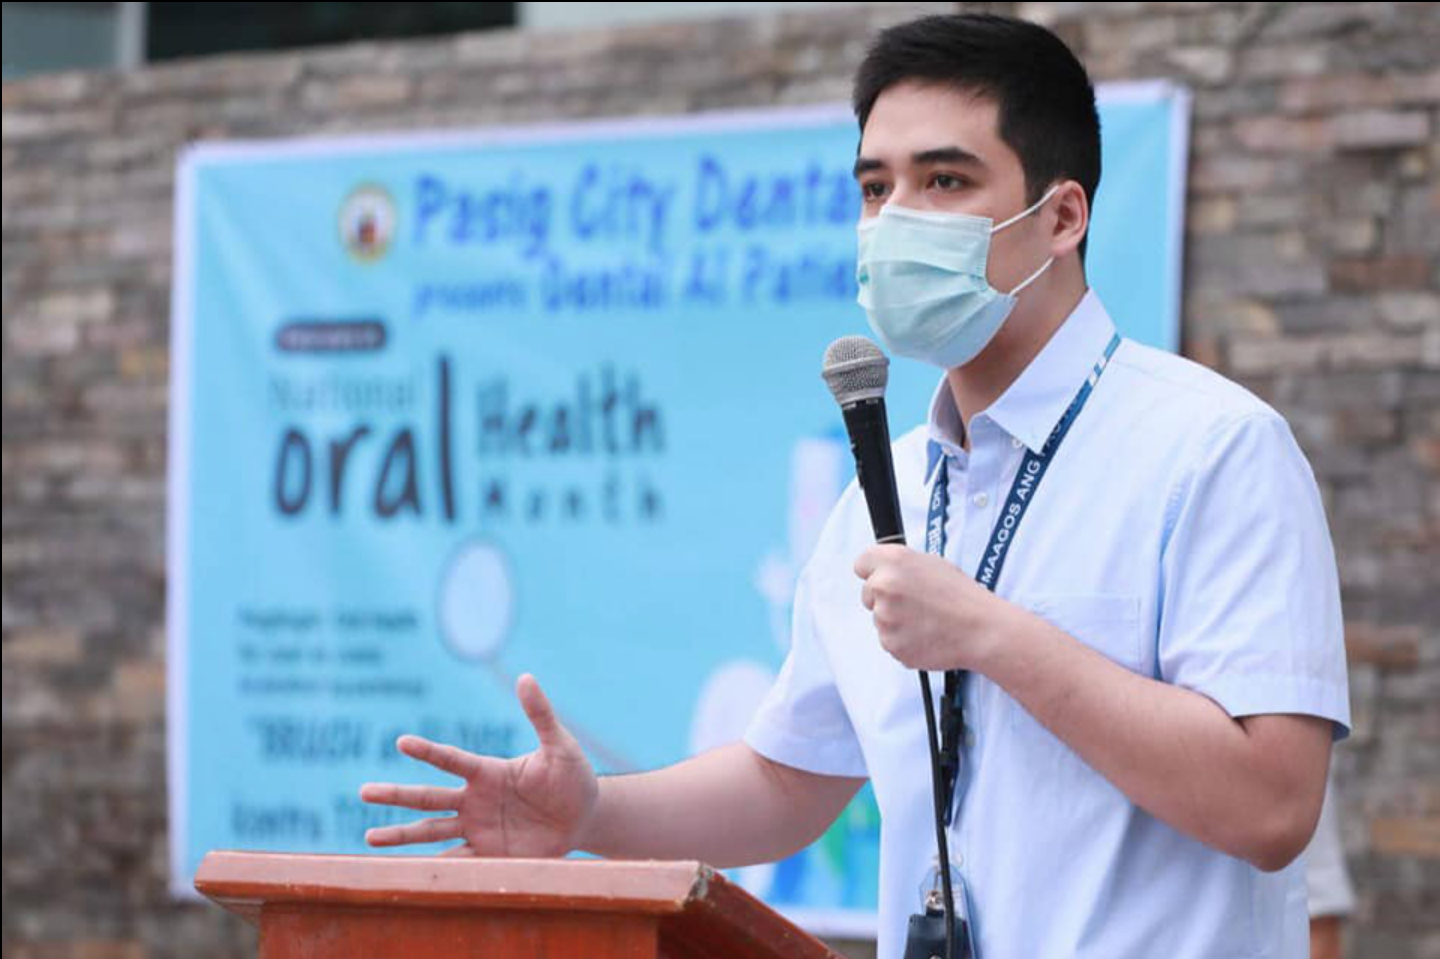 Vico Sotto named among International Anticorruption champions by US State Department